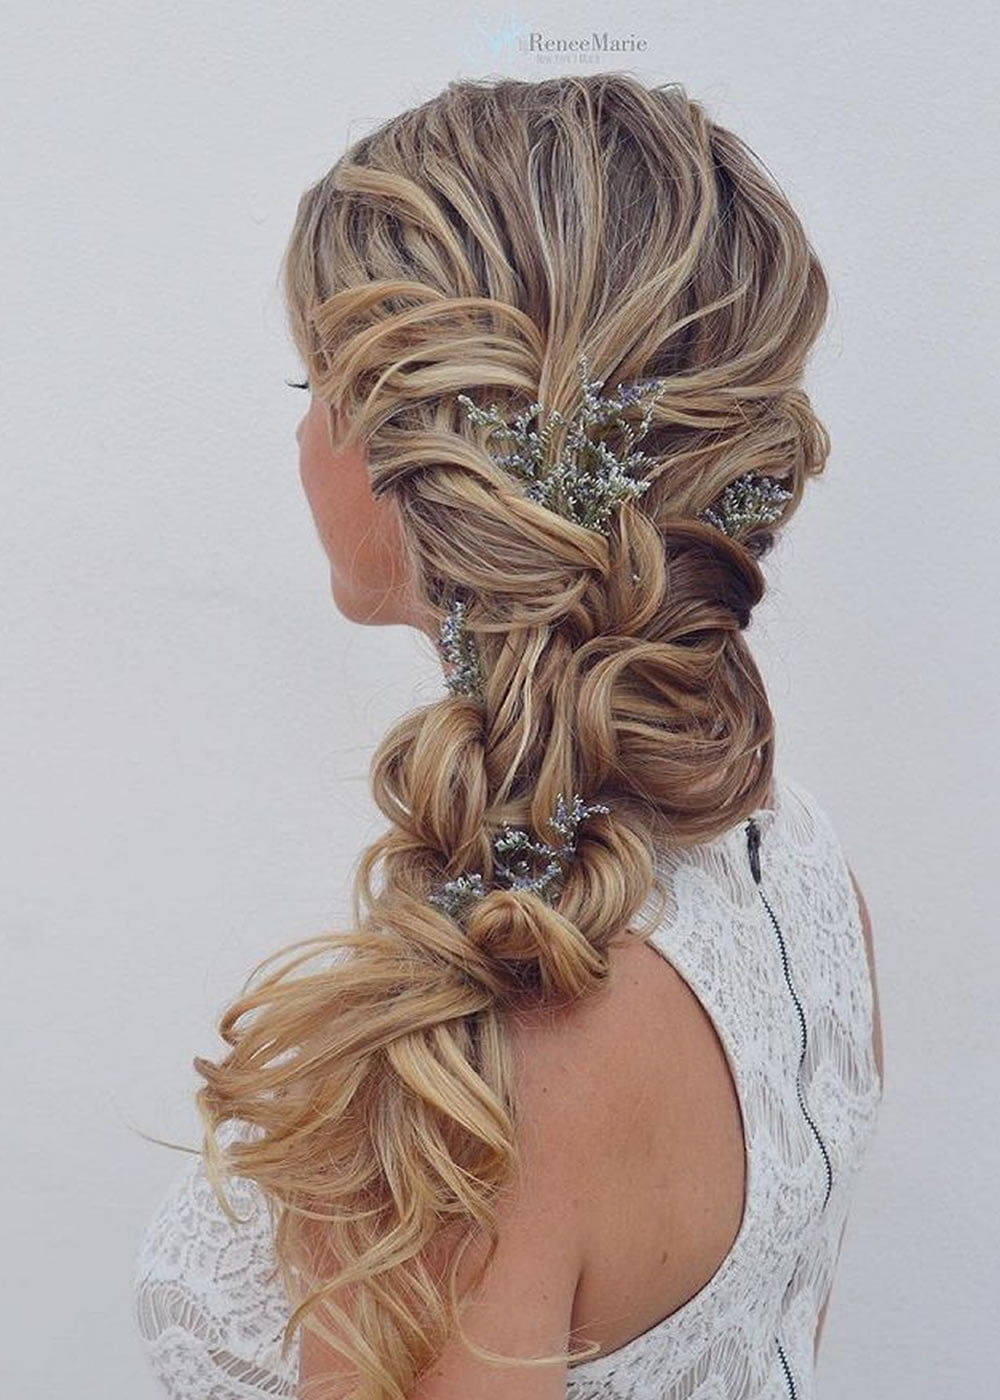 Soft Braided Hairstyle Ideas 2018 2019 Hairstyles